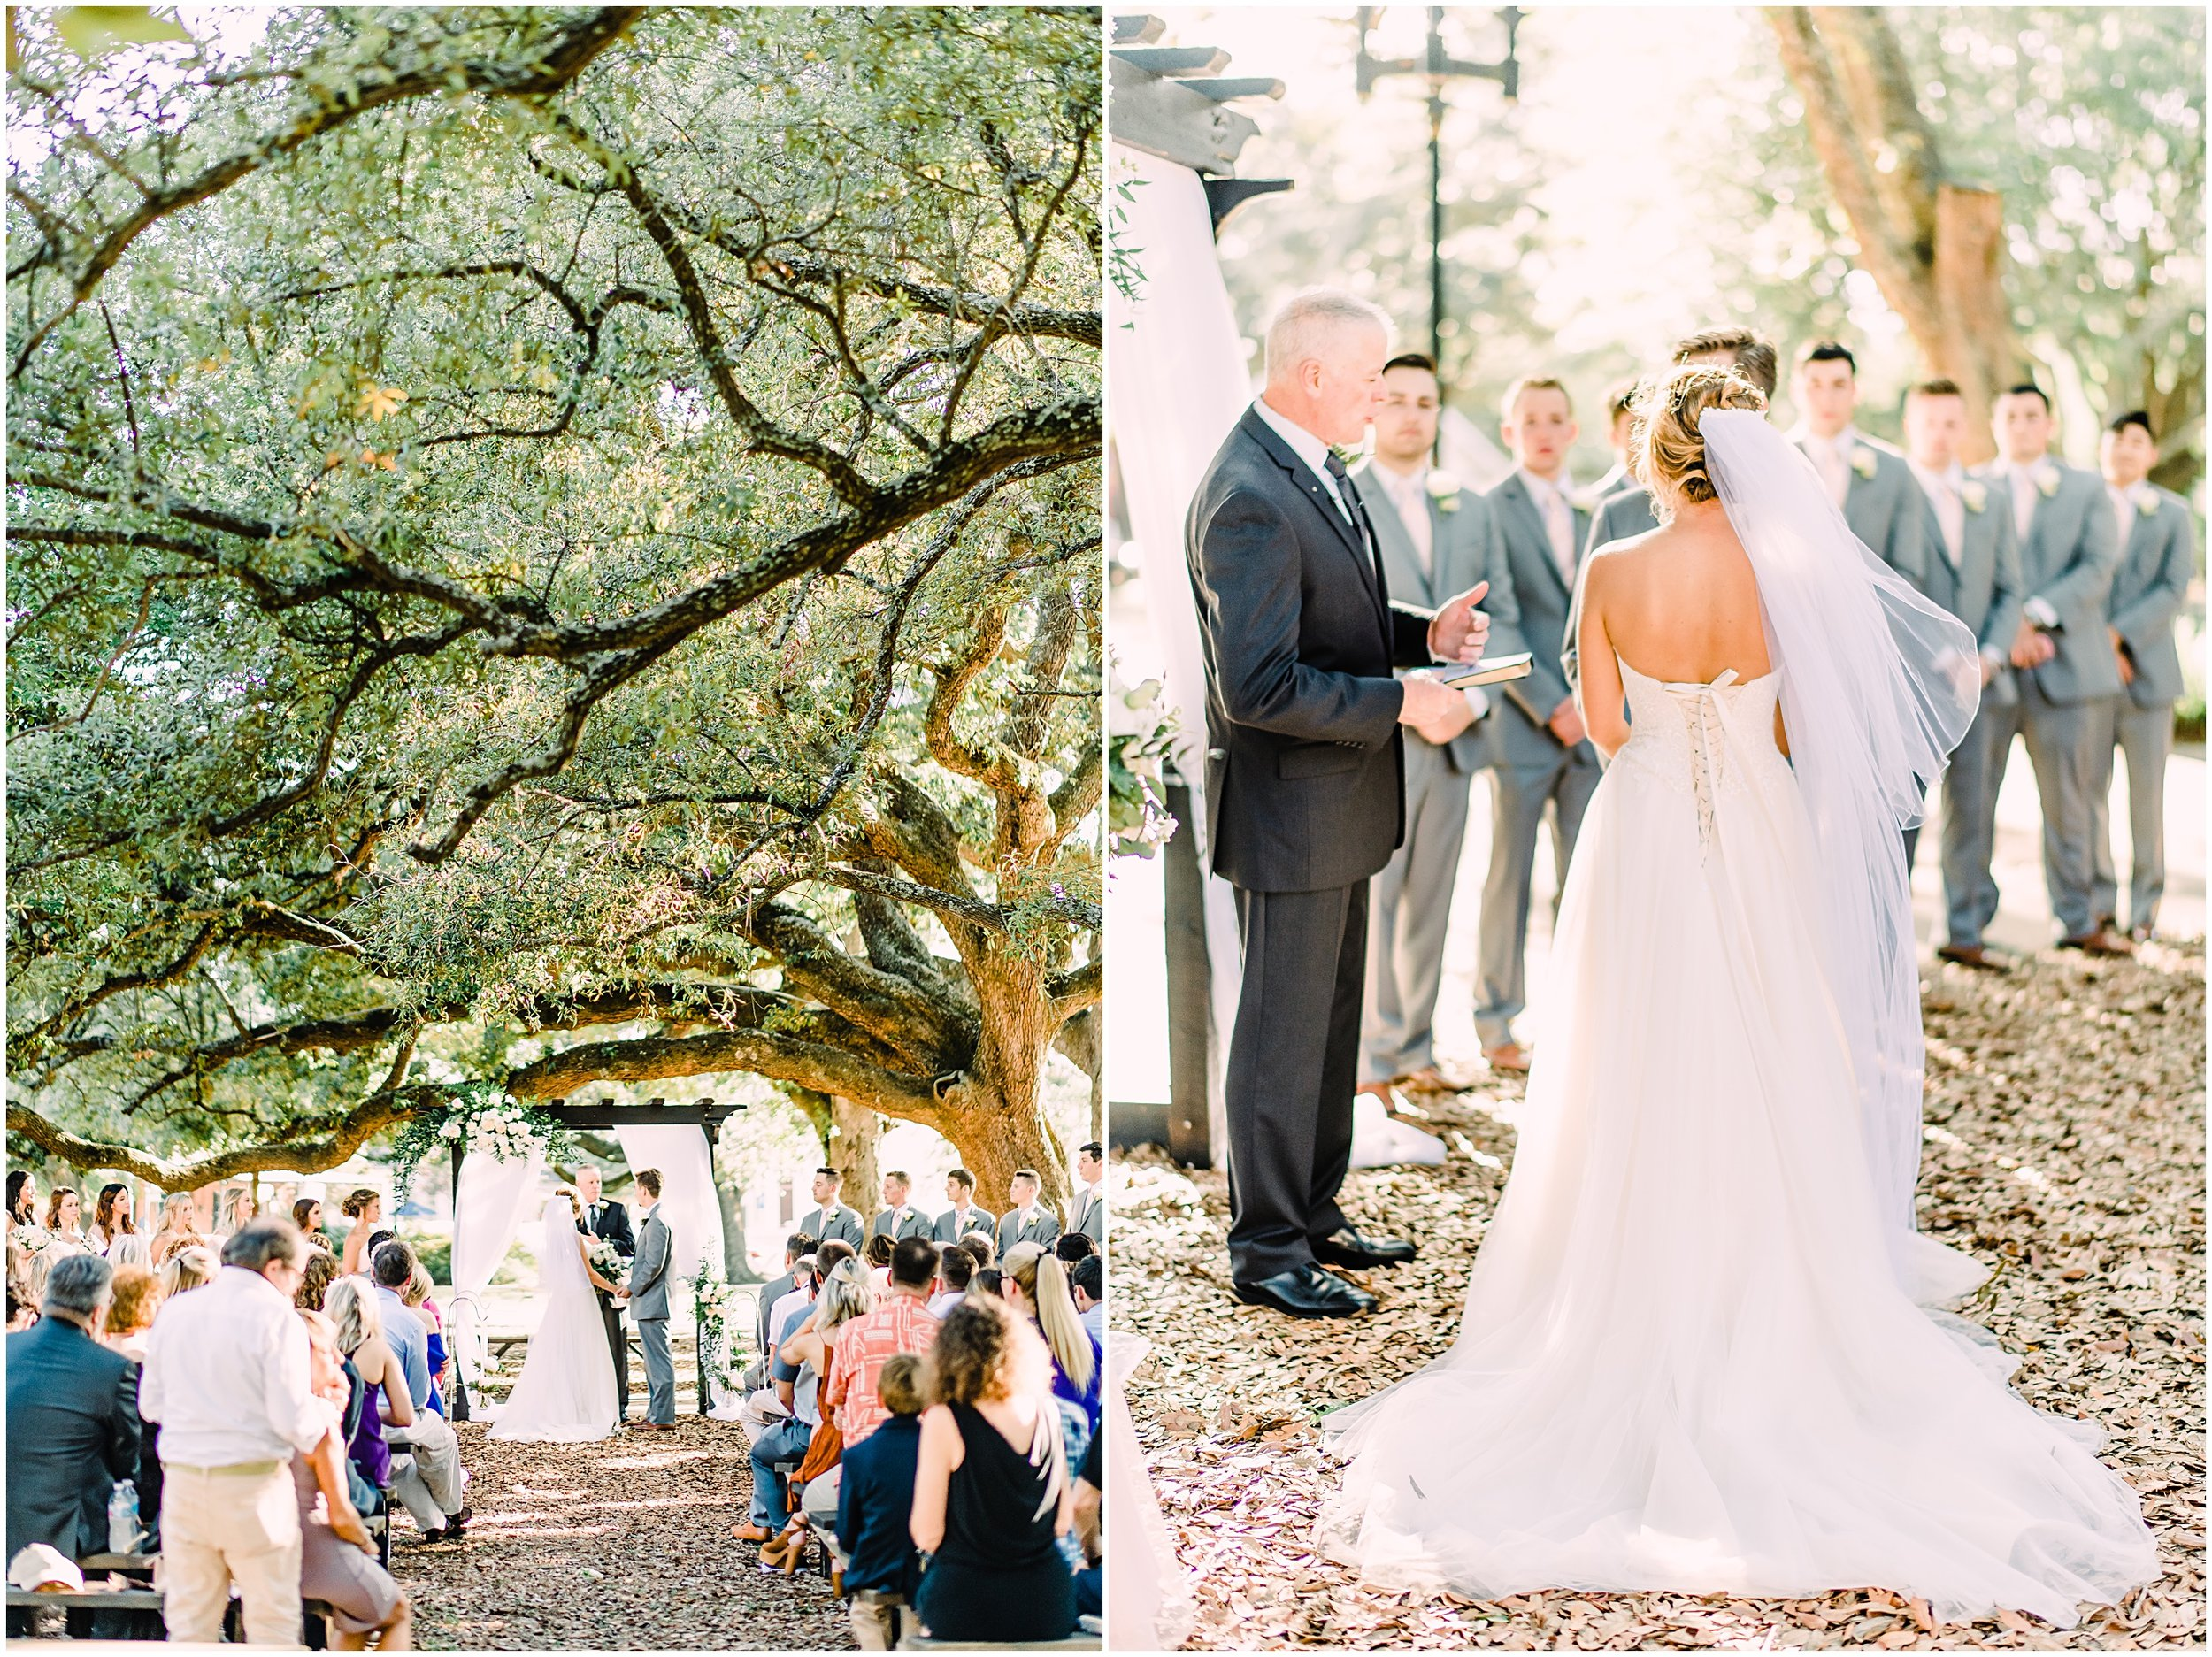 bestpensacolaweddingphotographer_1158.jpg